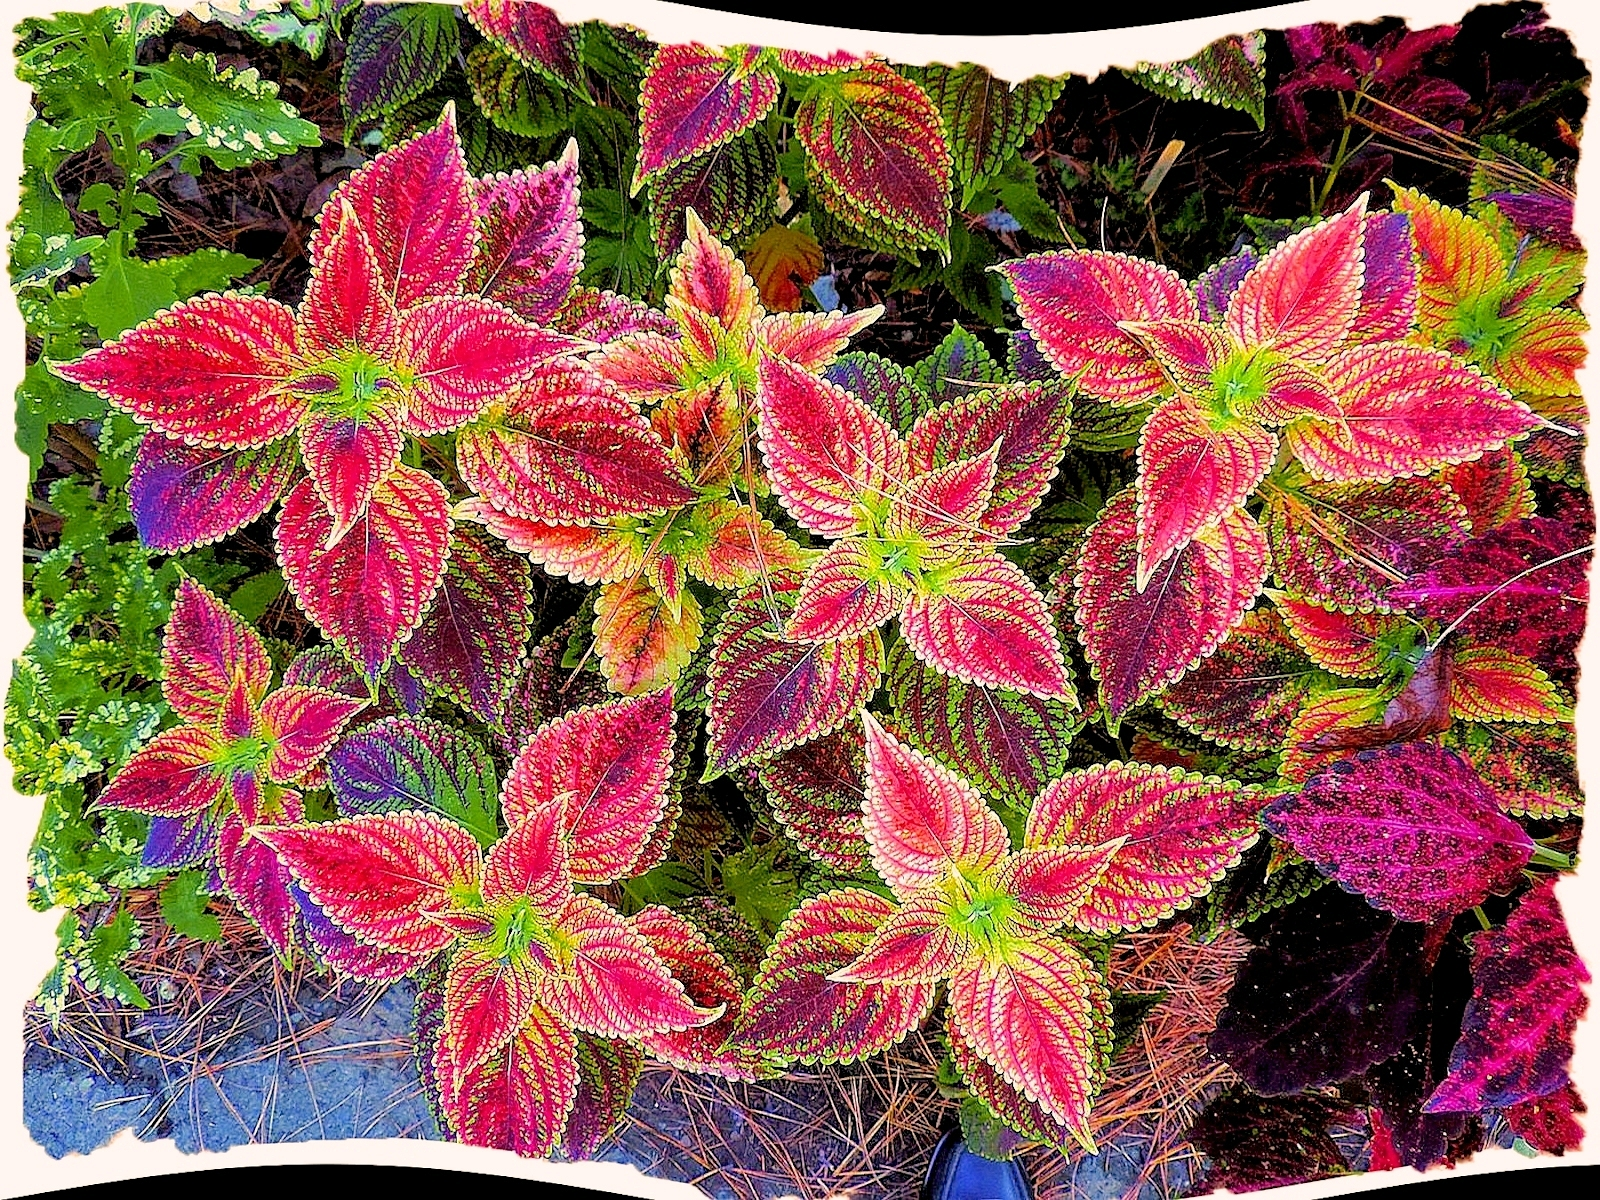 Color Patterns in the leaves of a Coleus Plants in the Shade Garden